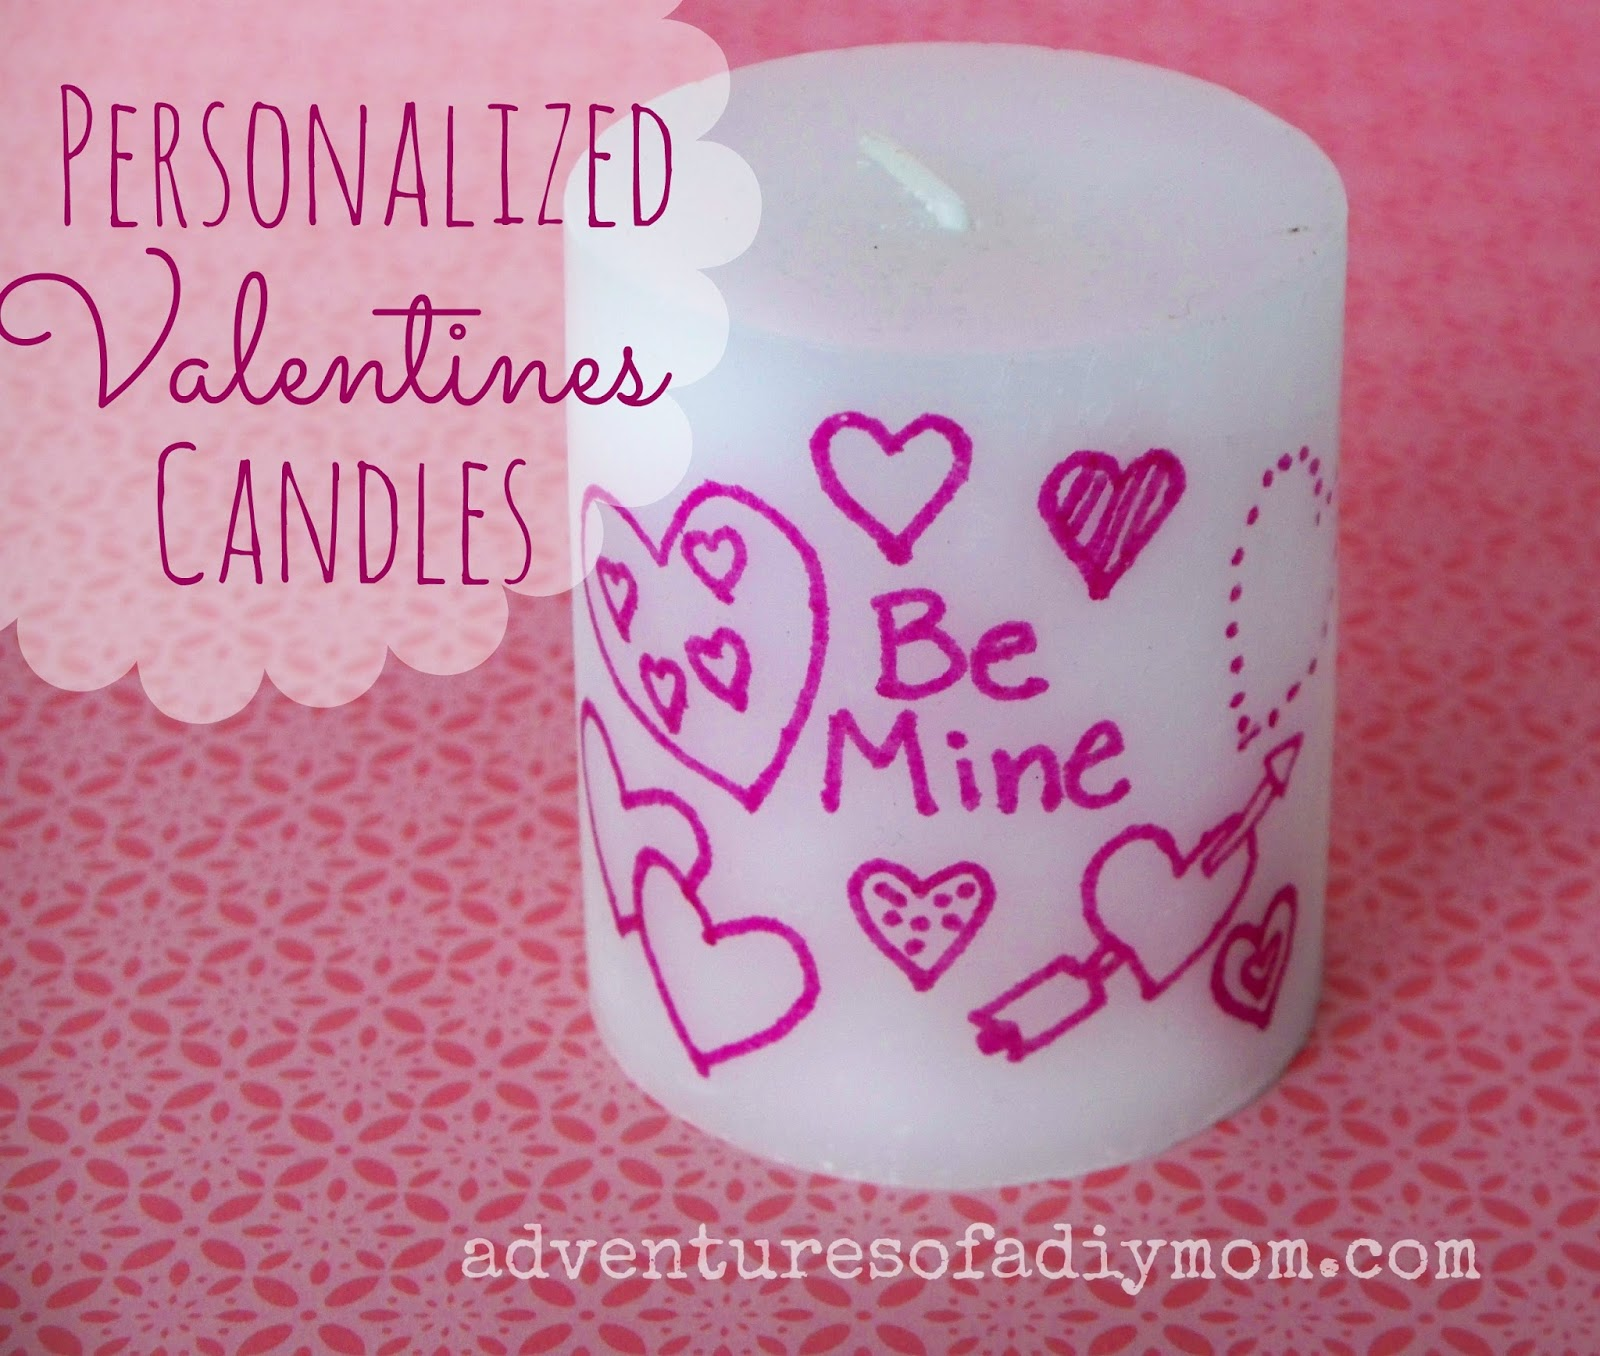 Personalized valentines Candles